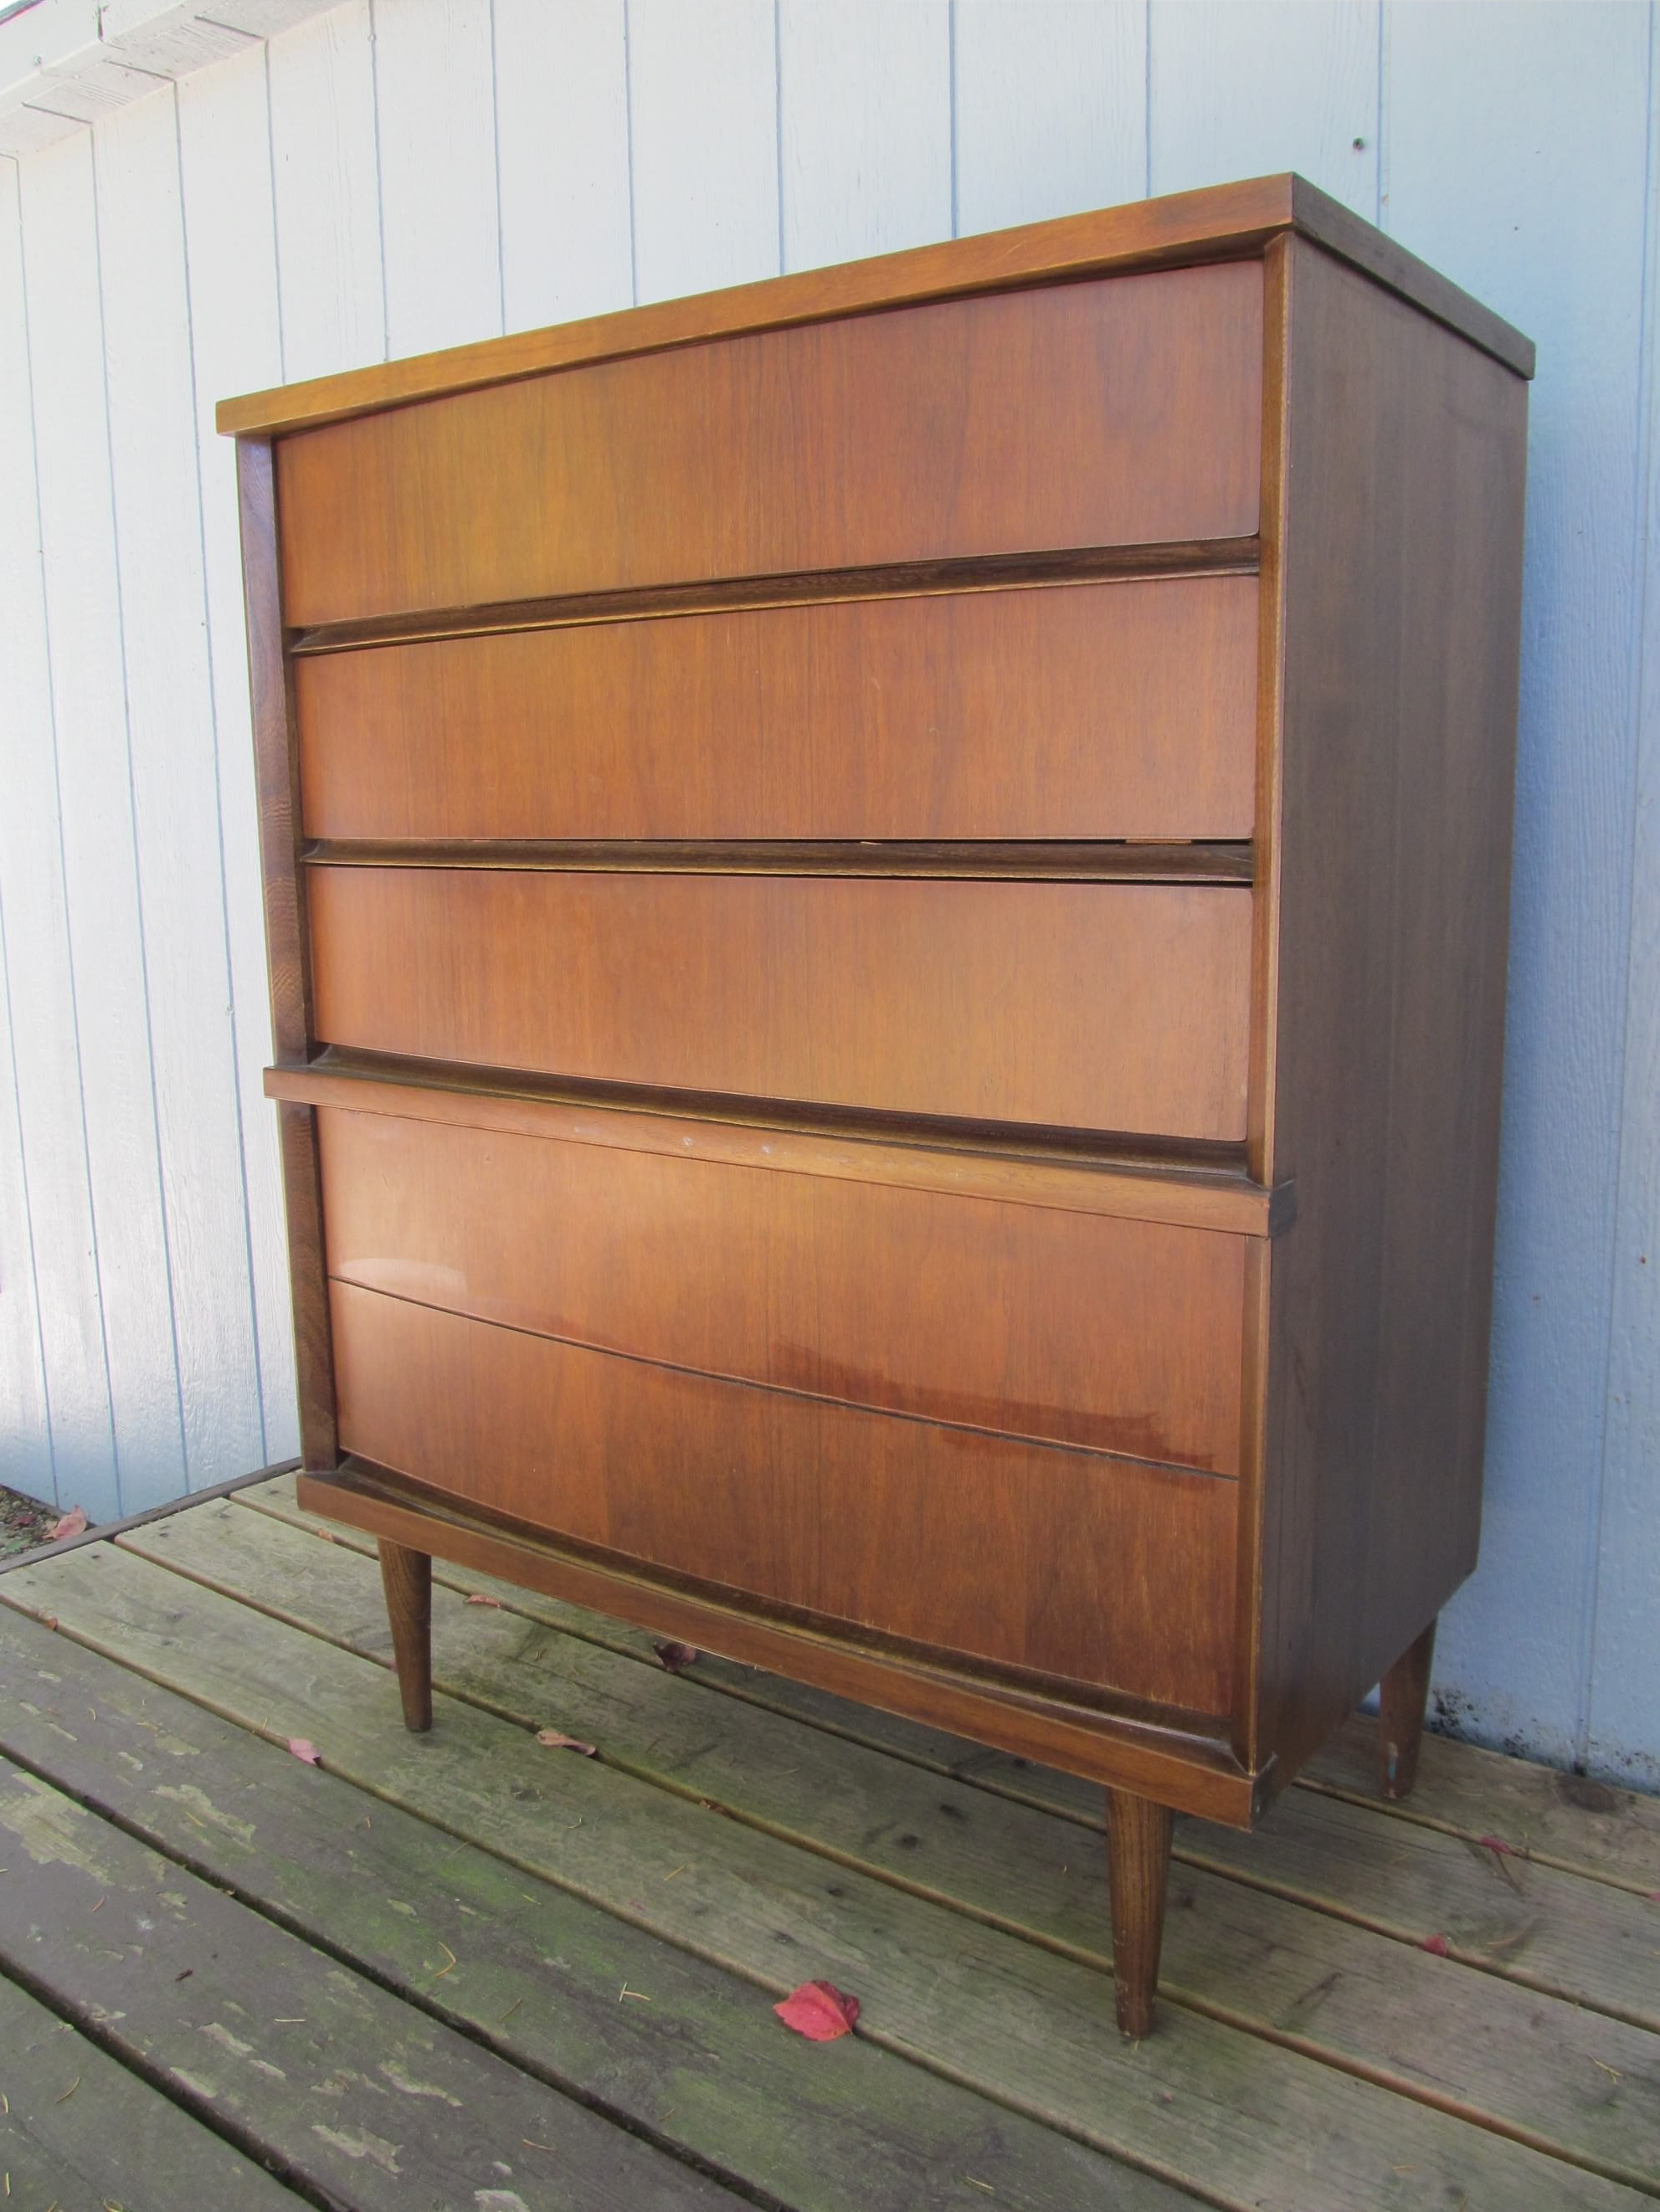 high mid century dresser on wood floor before white wall